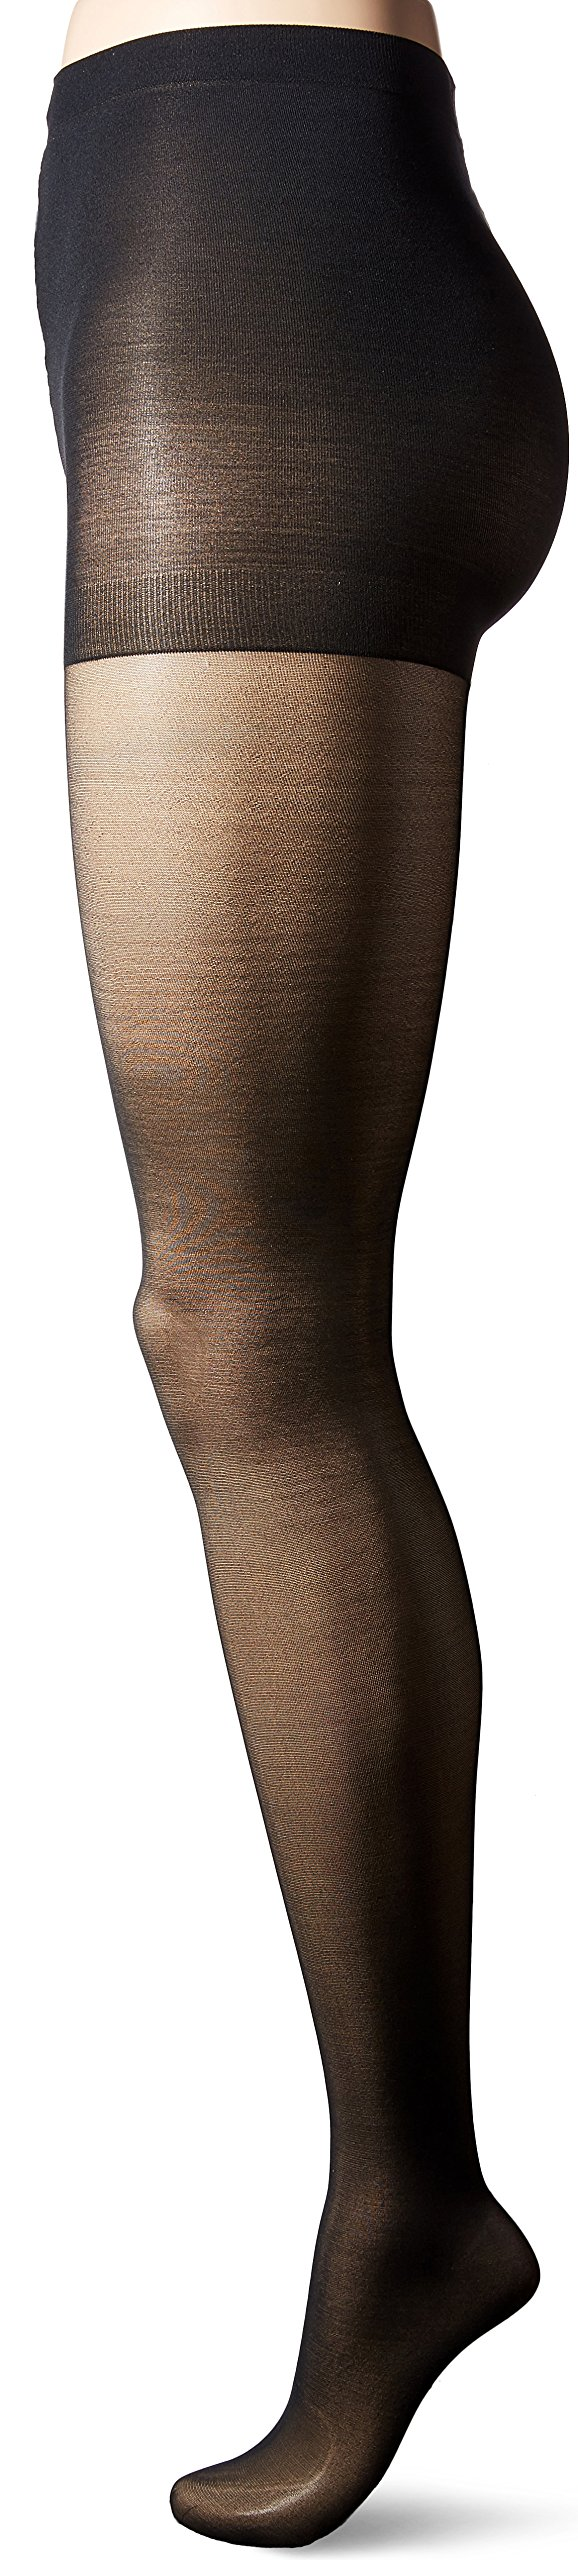 L'eggs Women's Sheer Energy Control Top Toe Pantyhose, Jet Black, Q